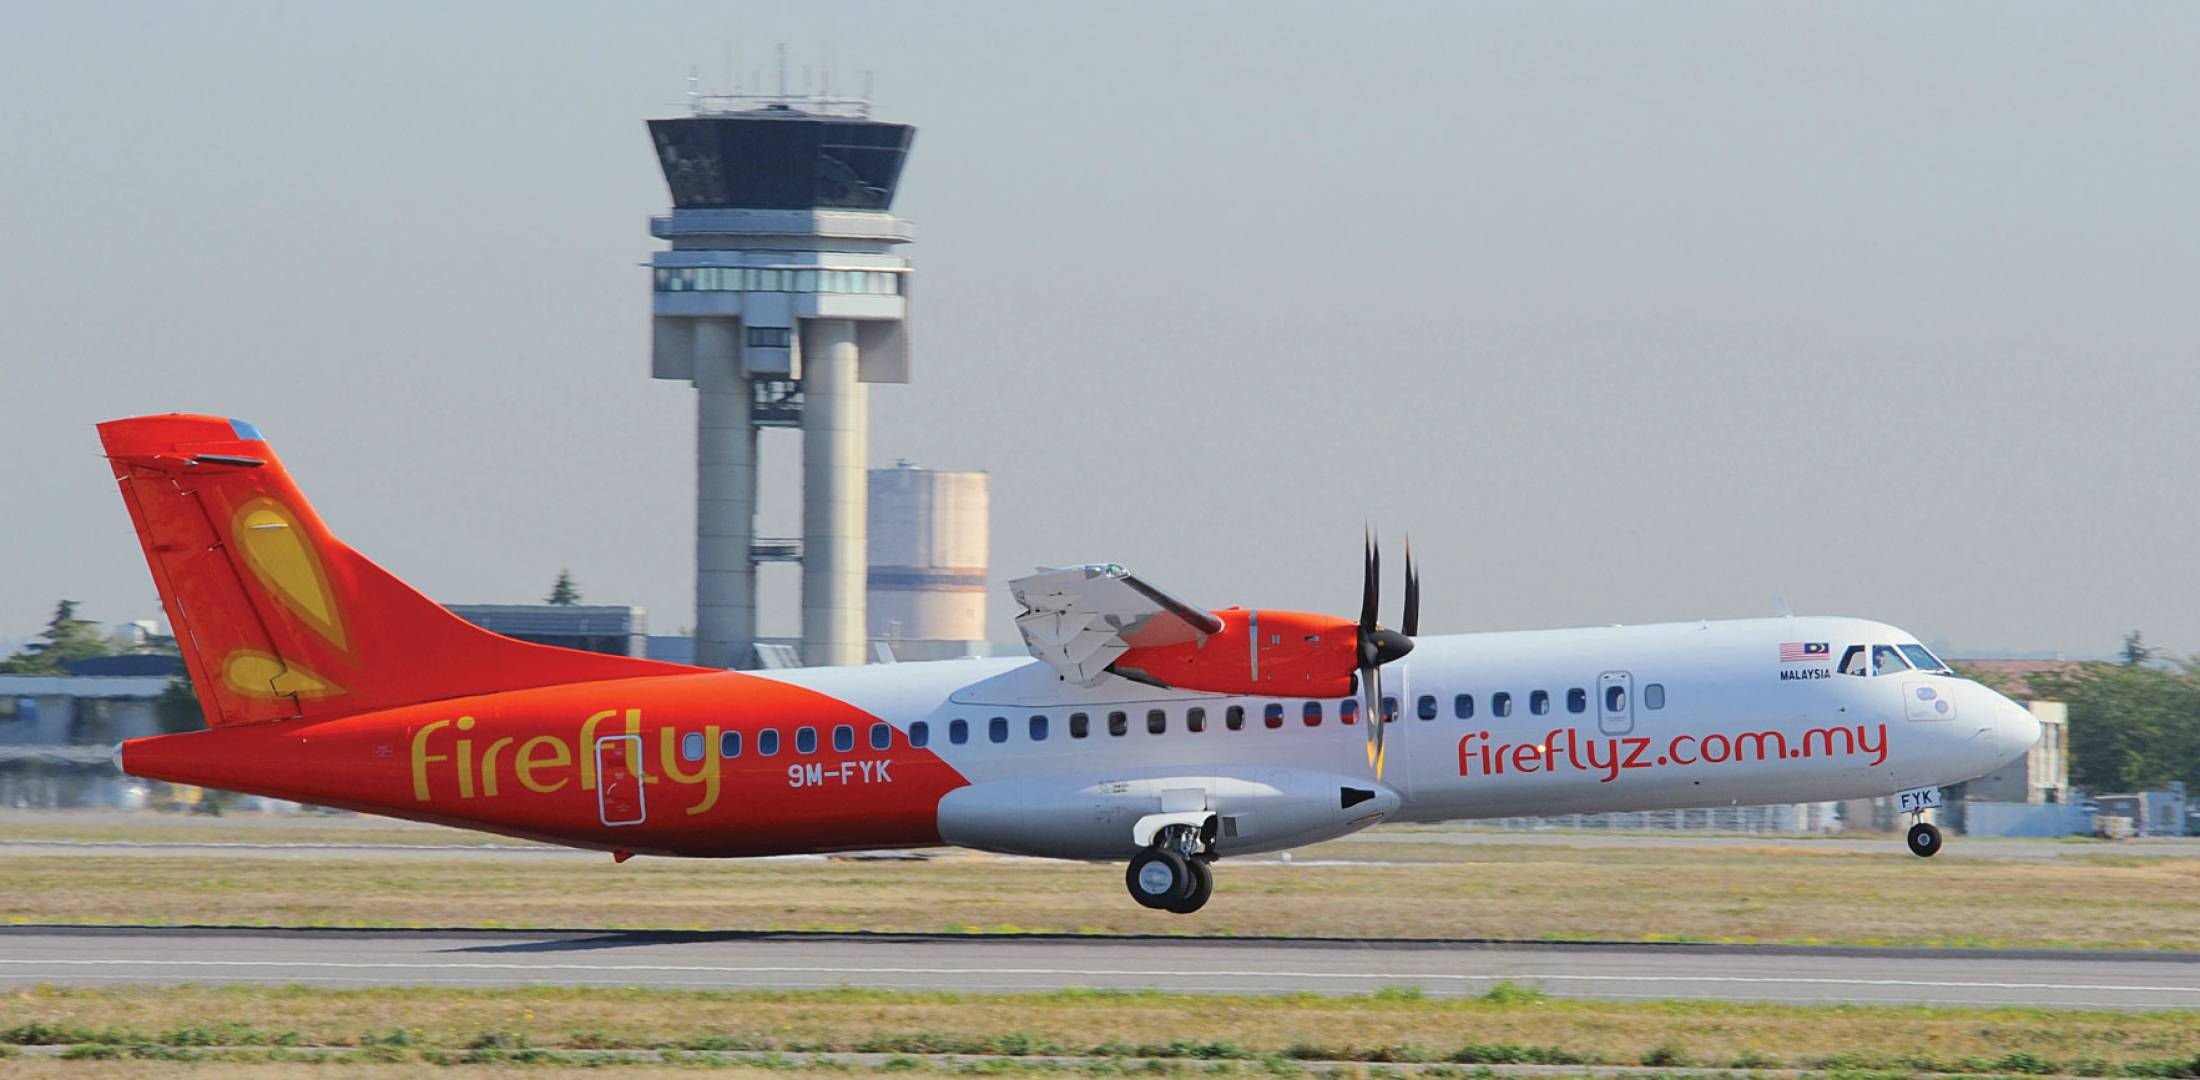 A subsidiary of Malaysia Airlines, Firefly operates 19 ATR 72s, a mix of -500s and -600s.